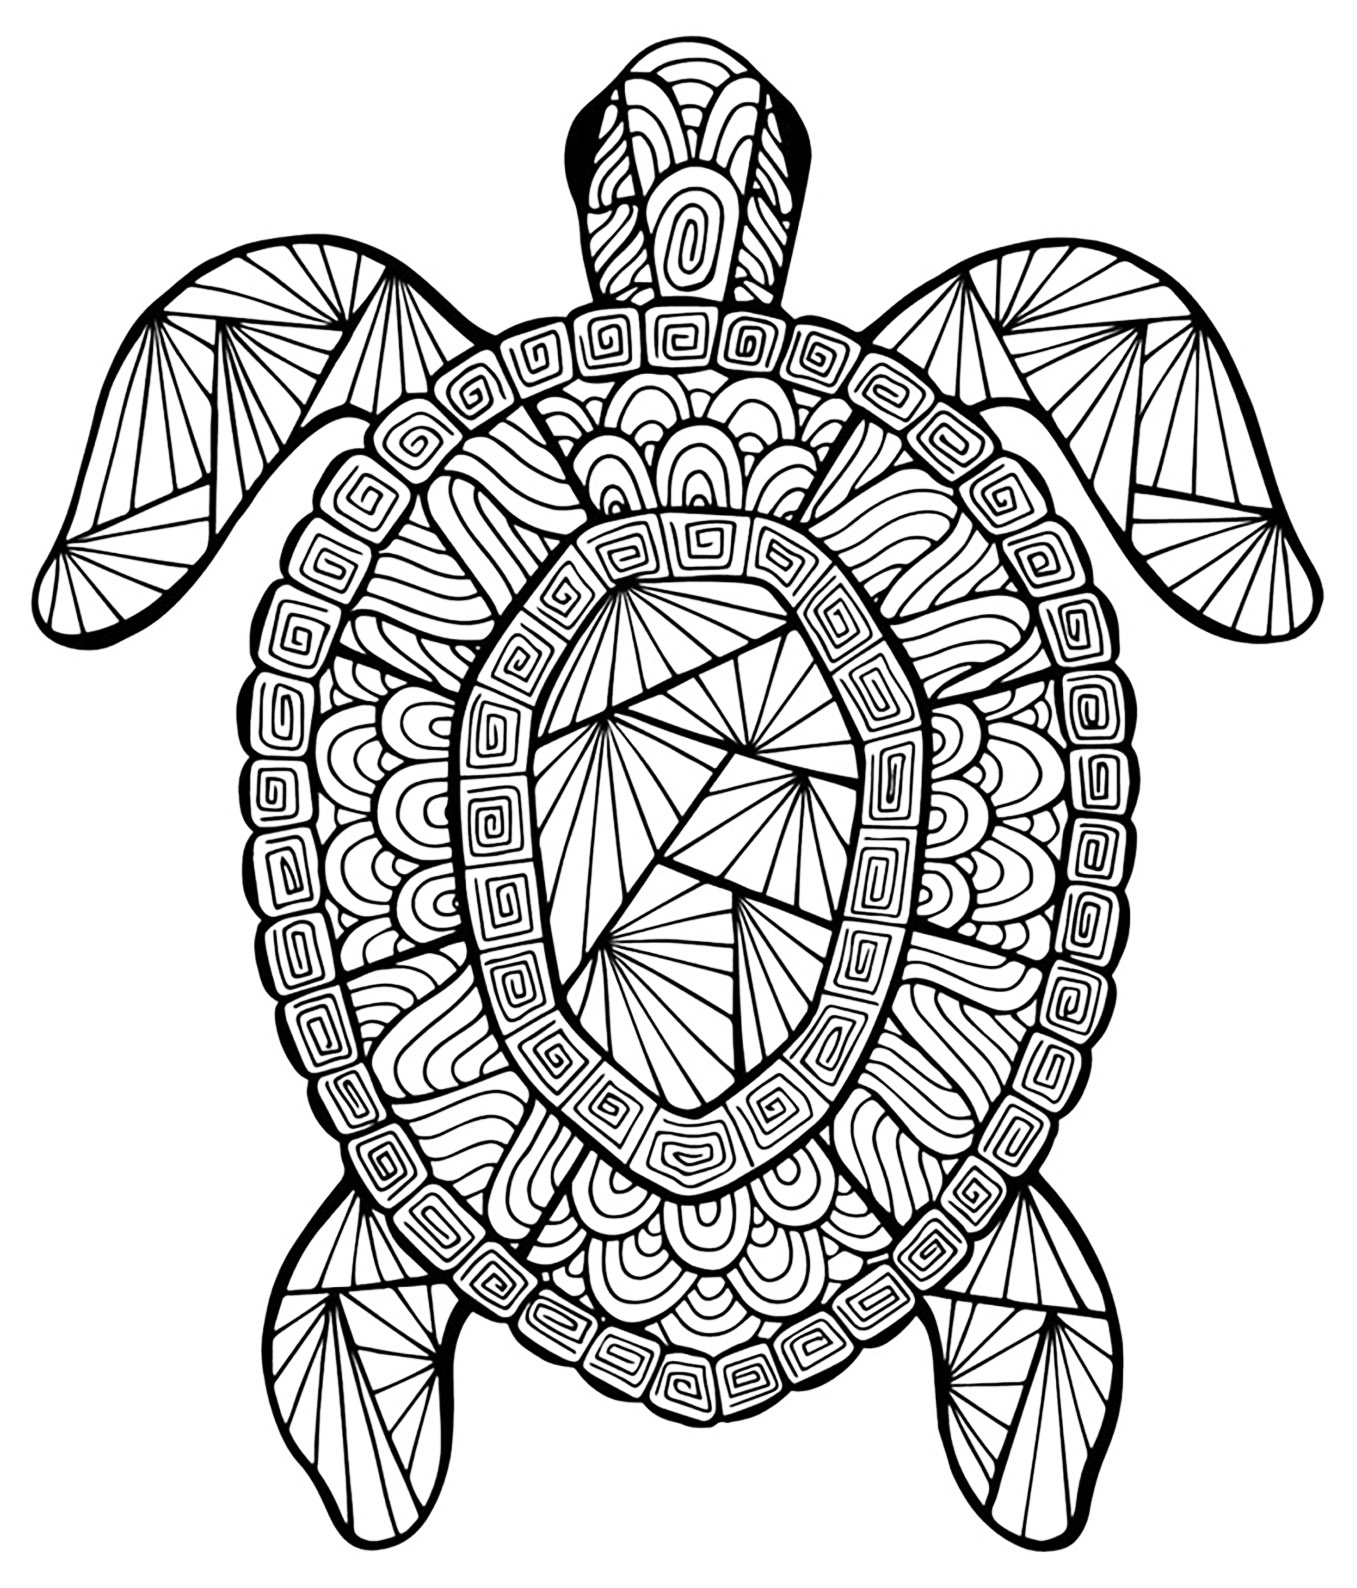 Coloring pages for adults turtle